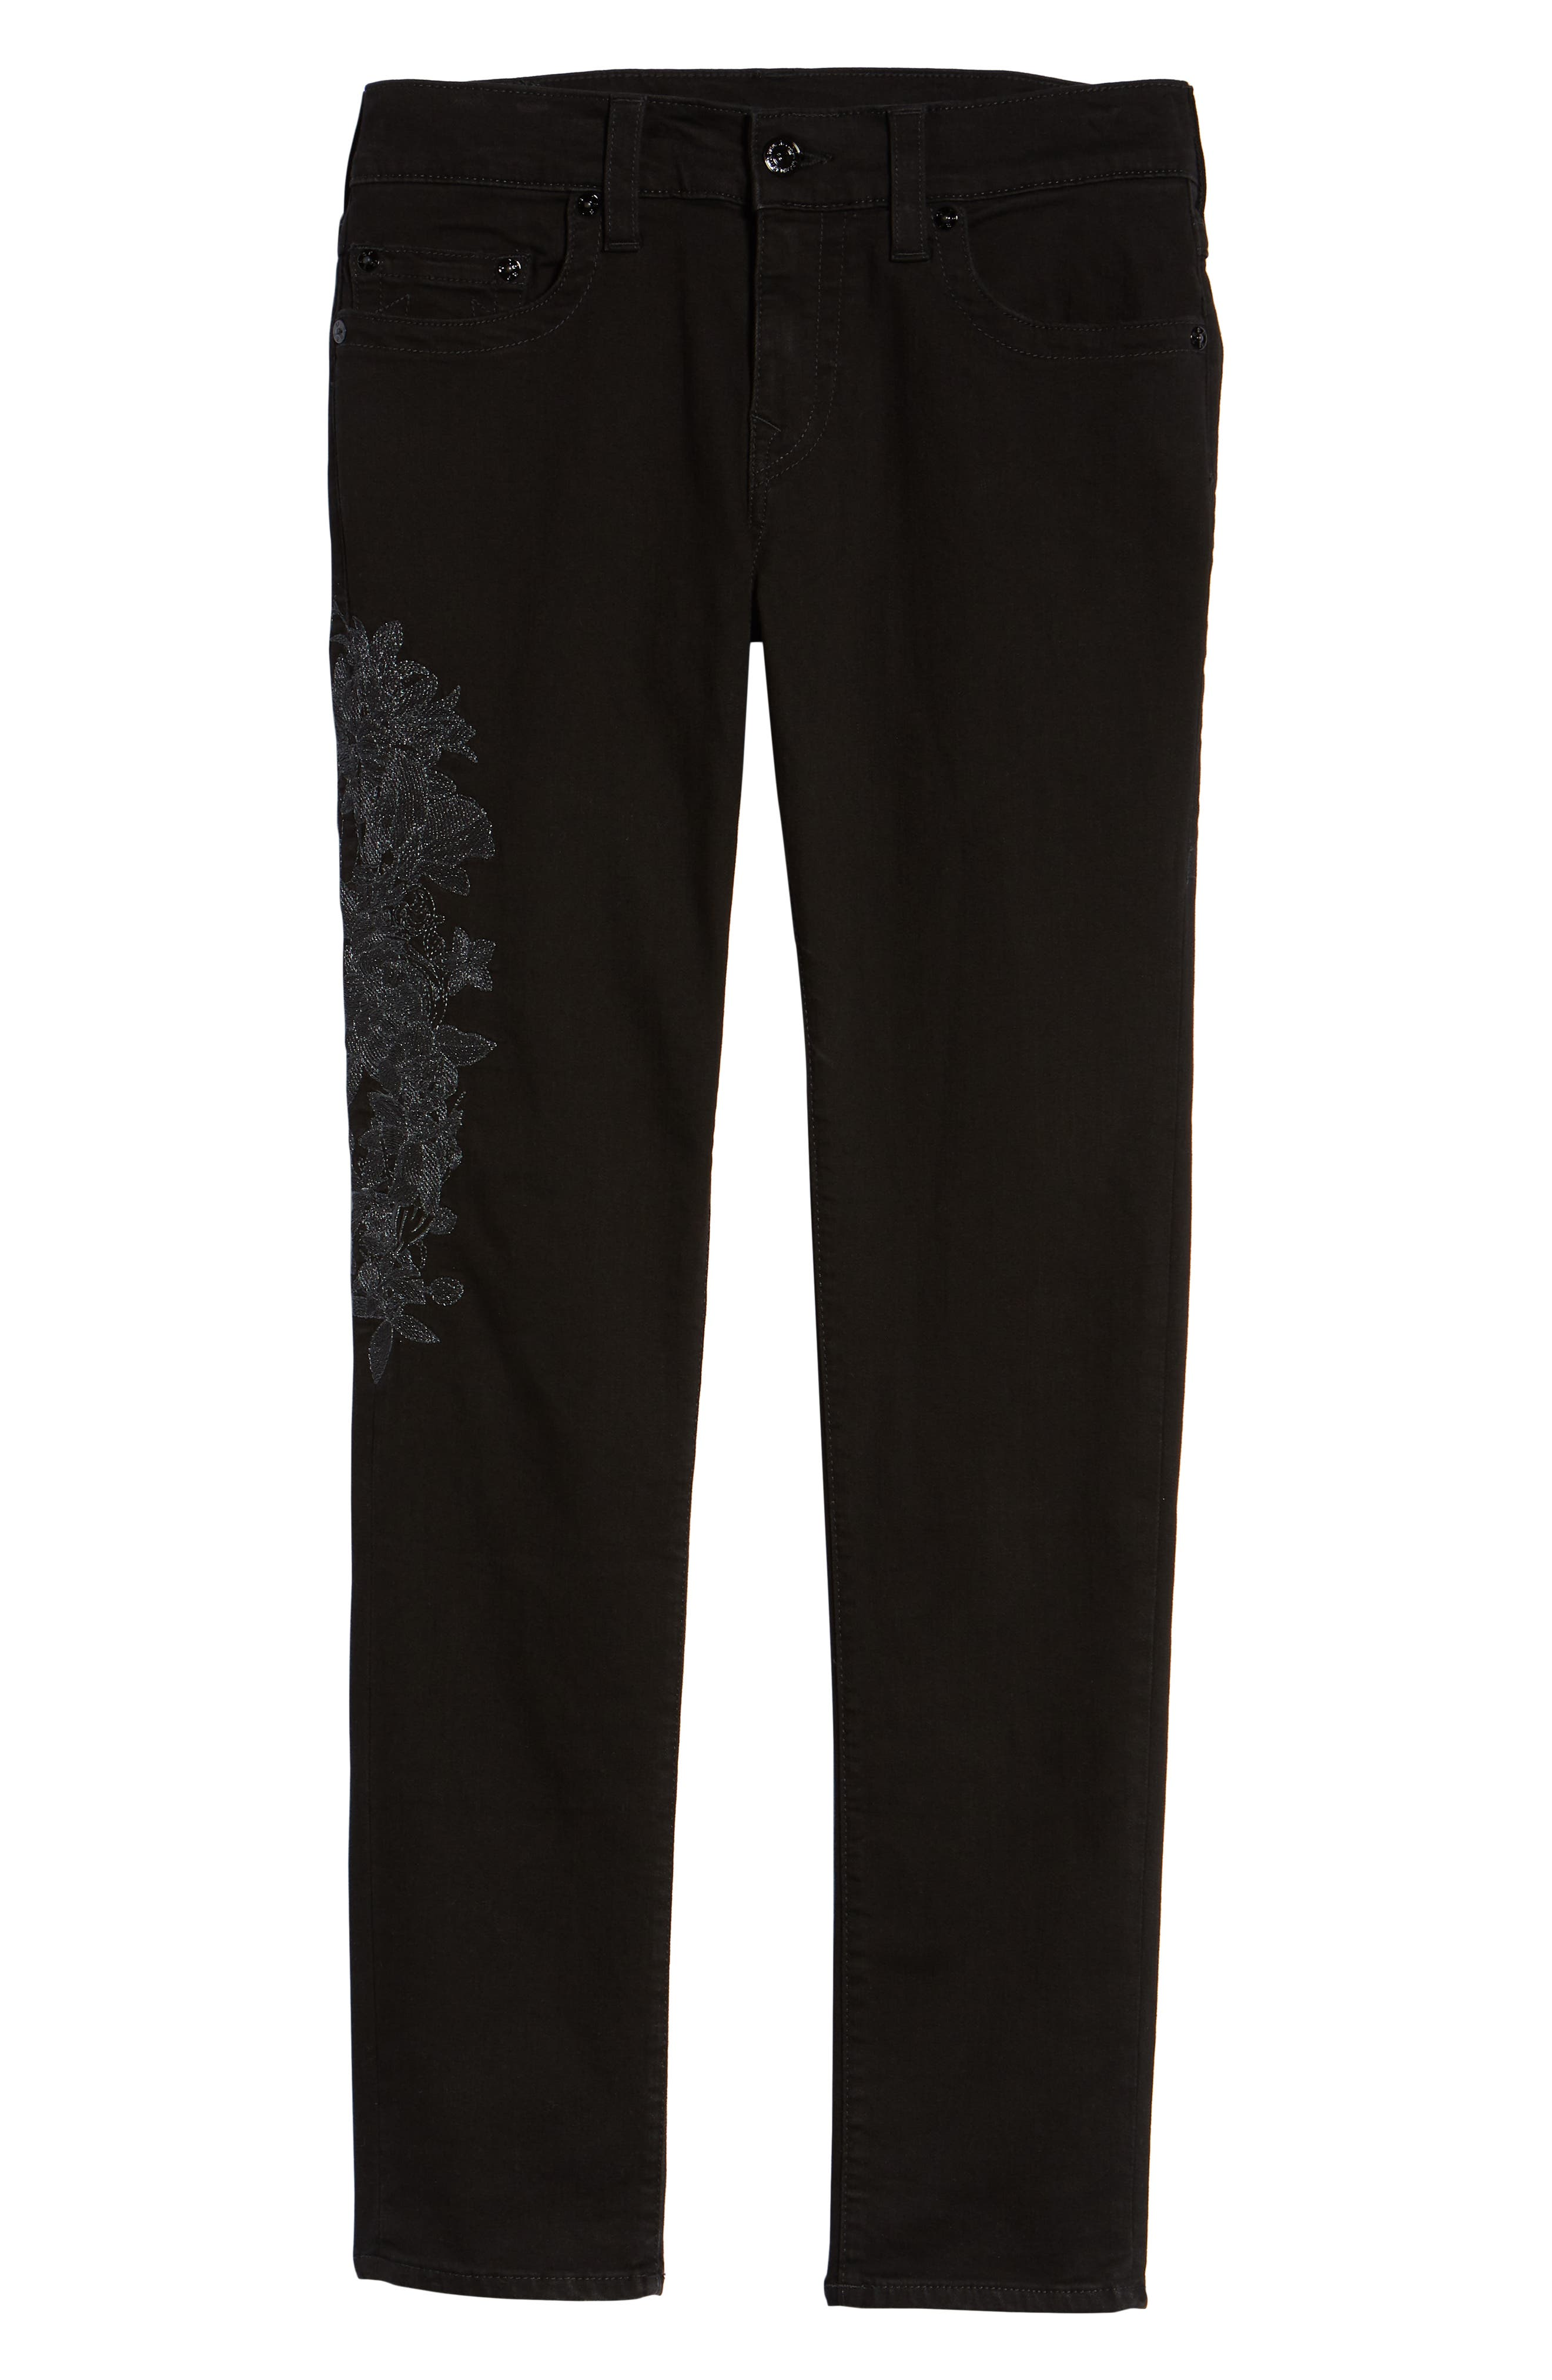 TRUE RELIGION BRAND JEANS,                             Rocco Skinny Fit Jeans,                             Alternate thumbnail 6, color,                             FPCB MAGNETIC FIELD